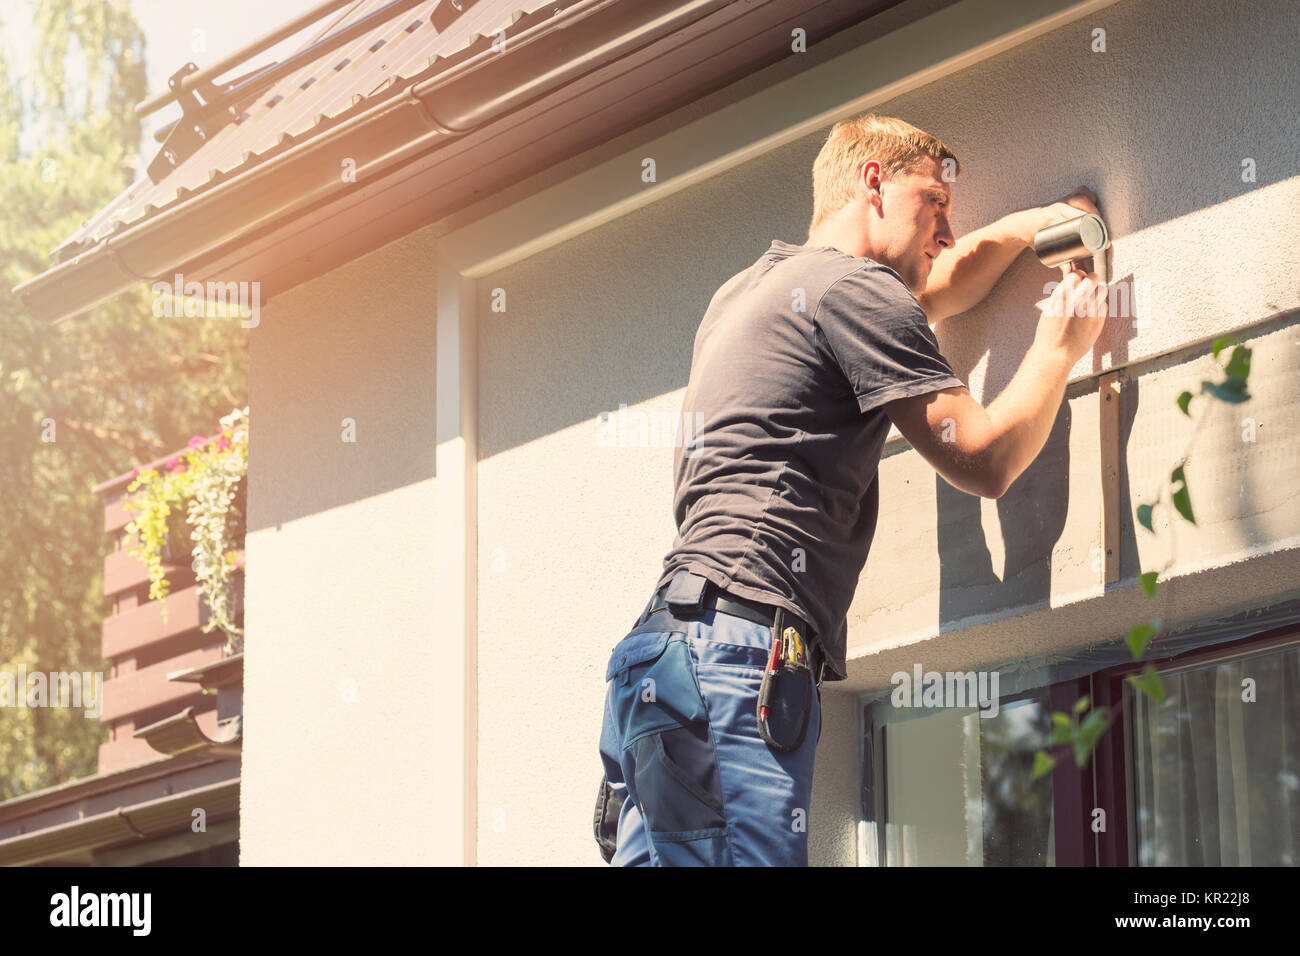 Fix It Services Stock Photos Images Alamy 0800 Handyman Changing A Light Fitting Wiring Electrician Installing Lamp On House Facade Image